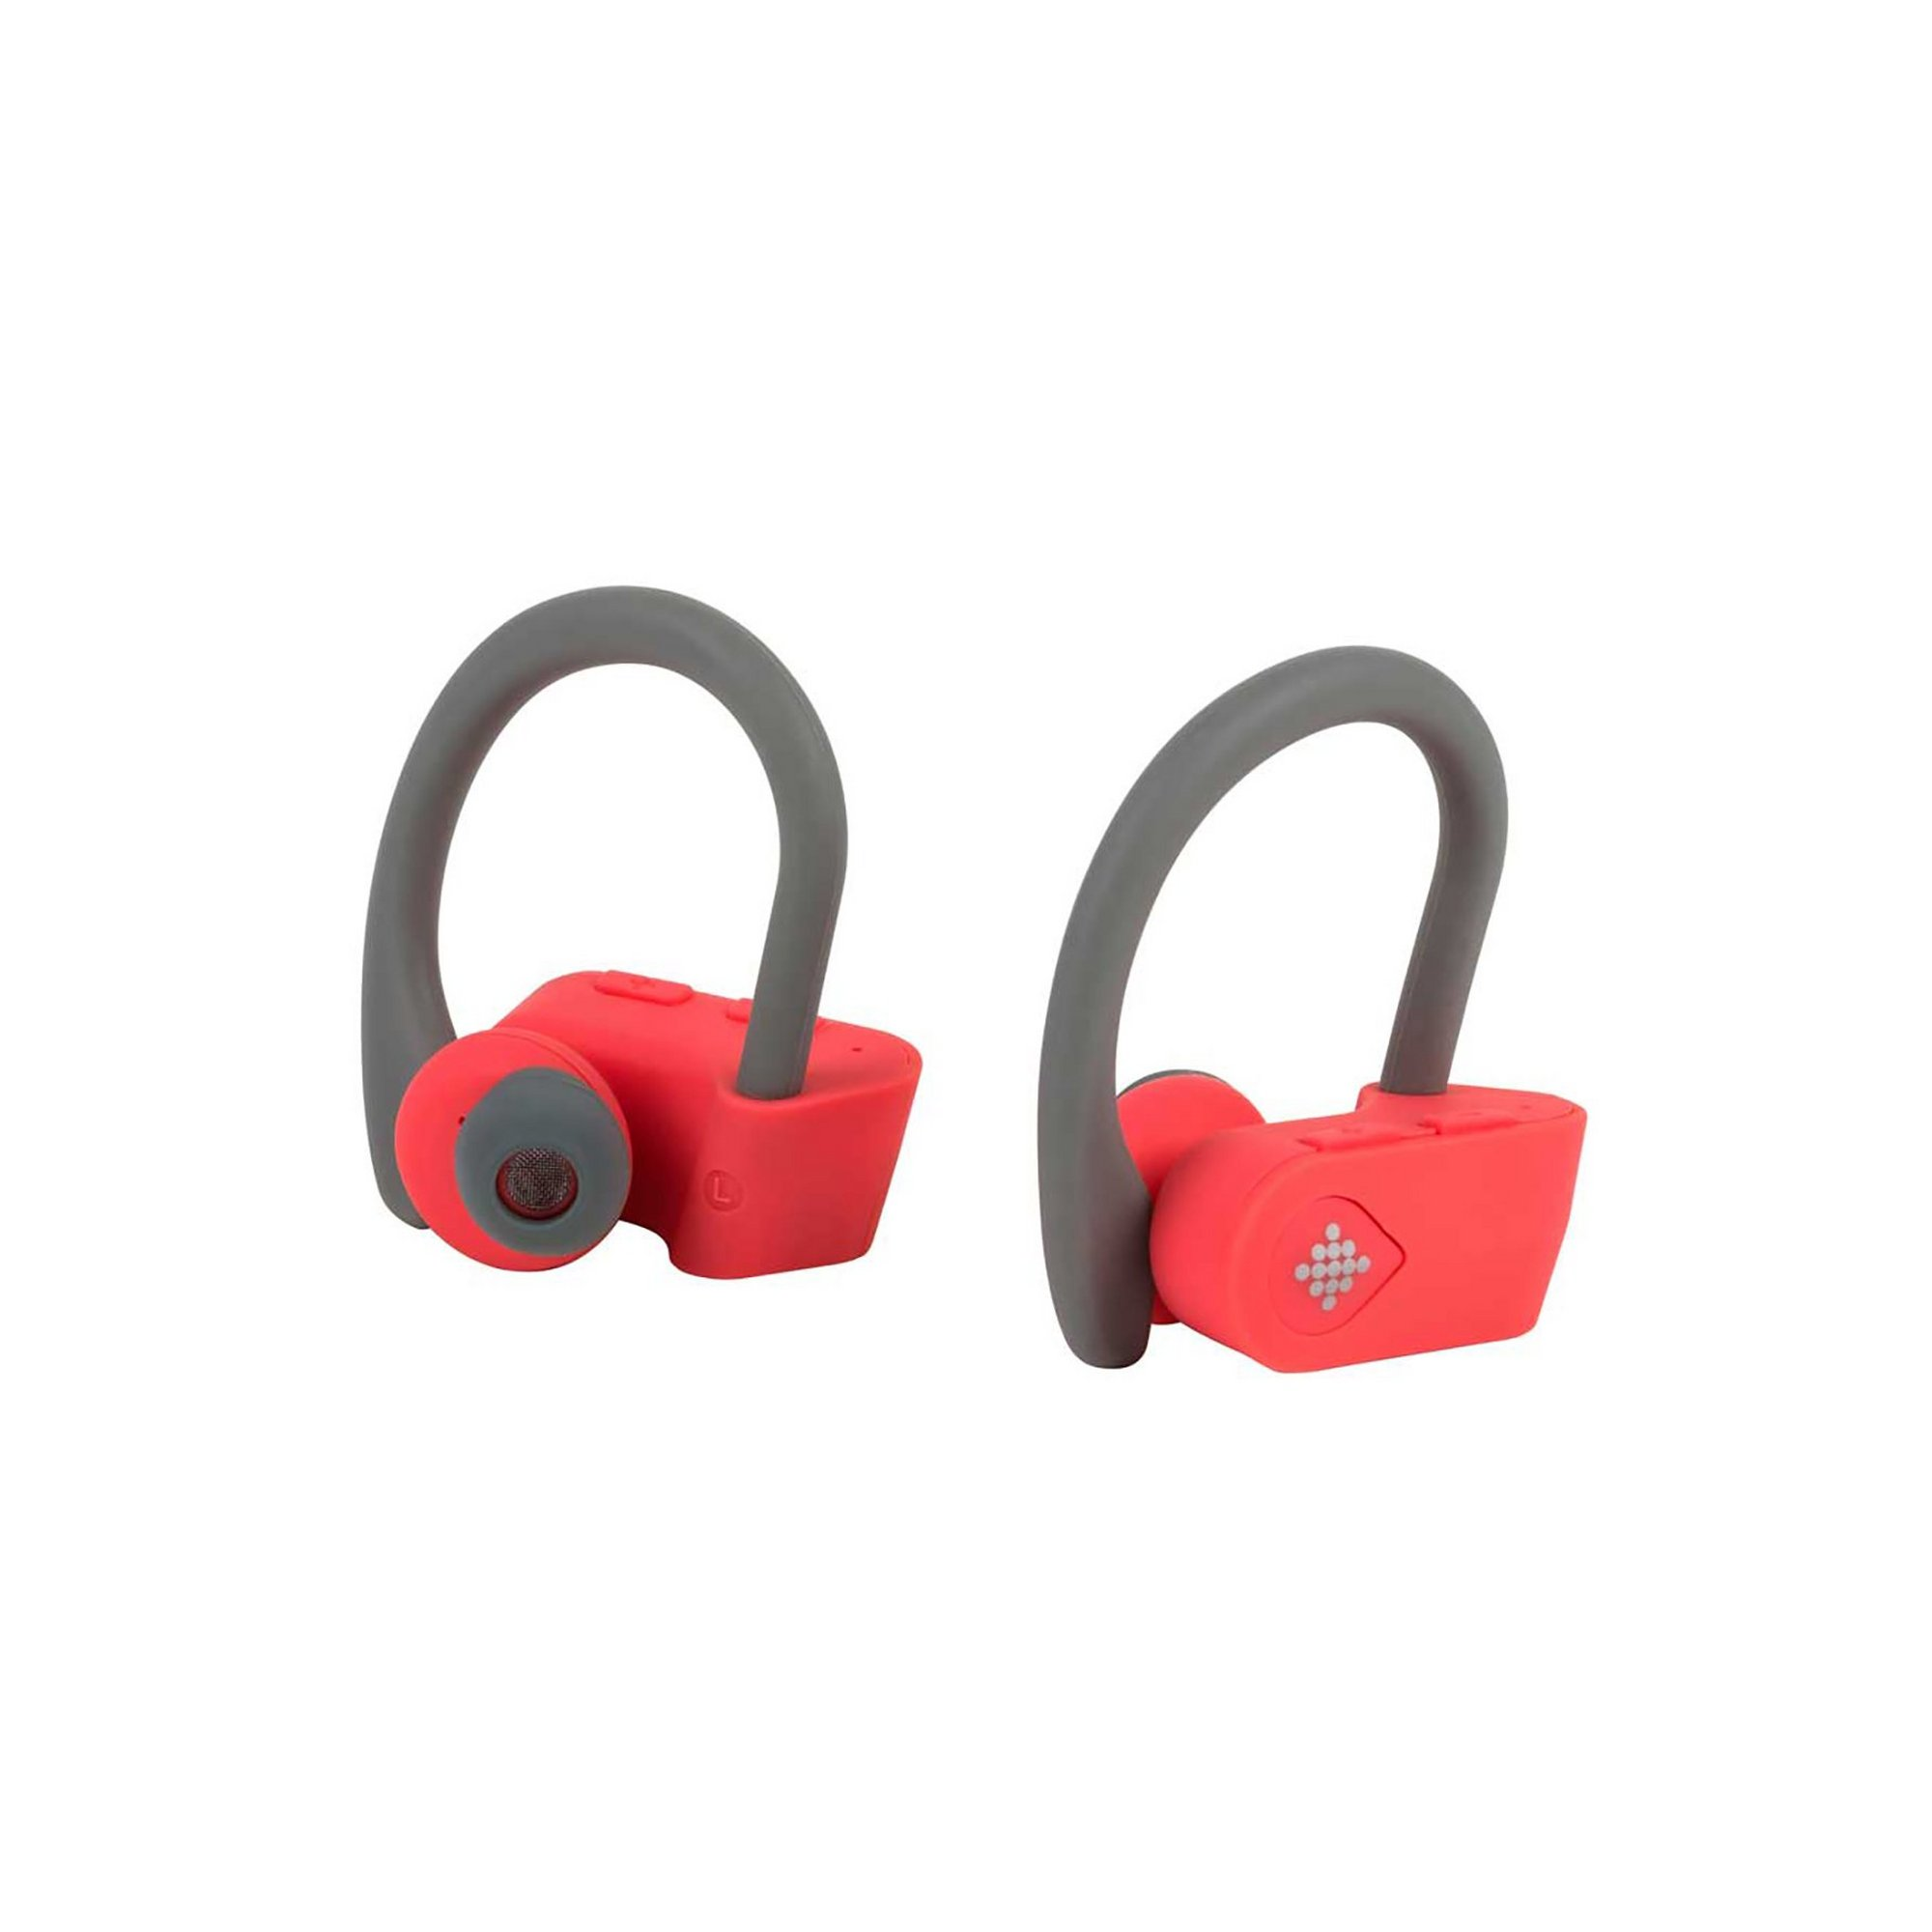 Image of Intempo Active Wireless Bluetooth Earphones